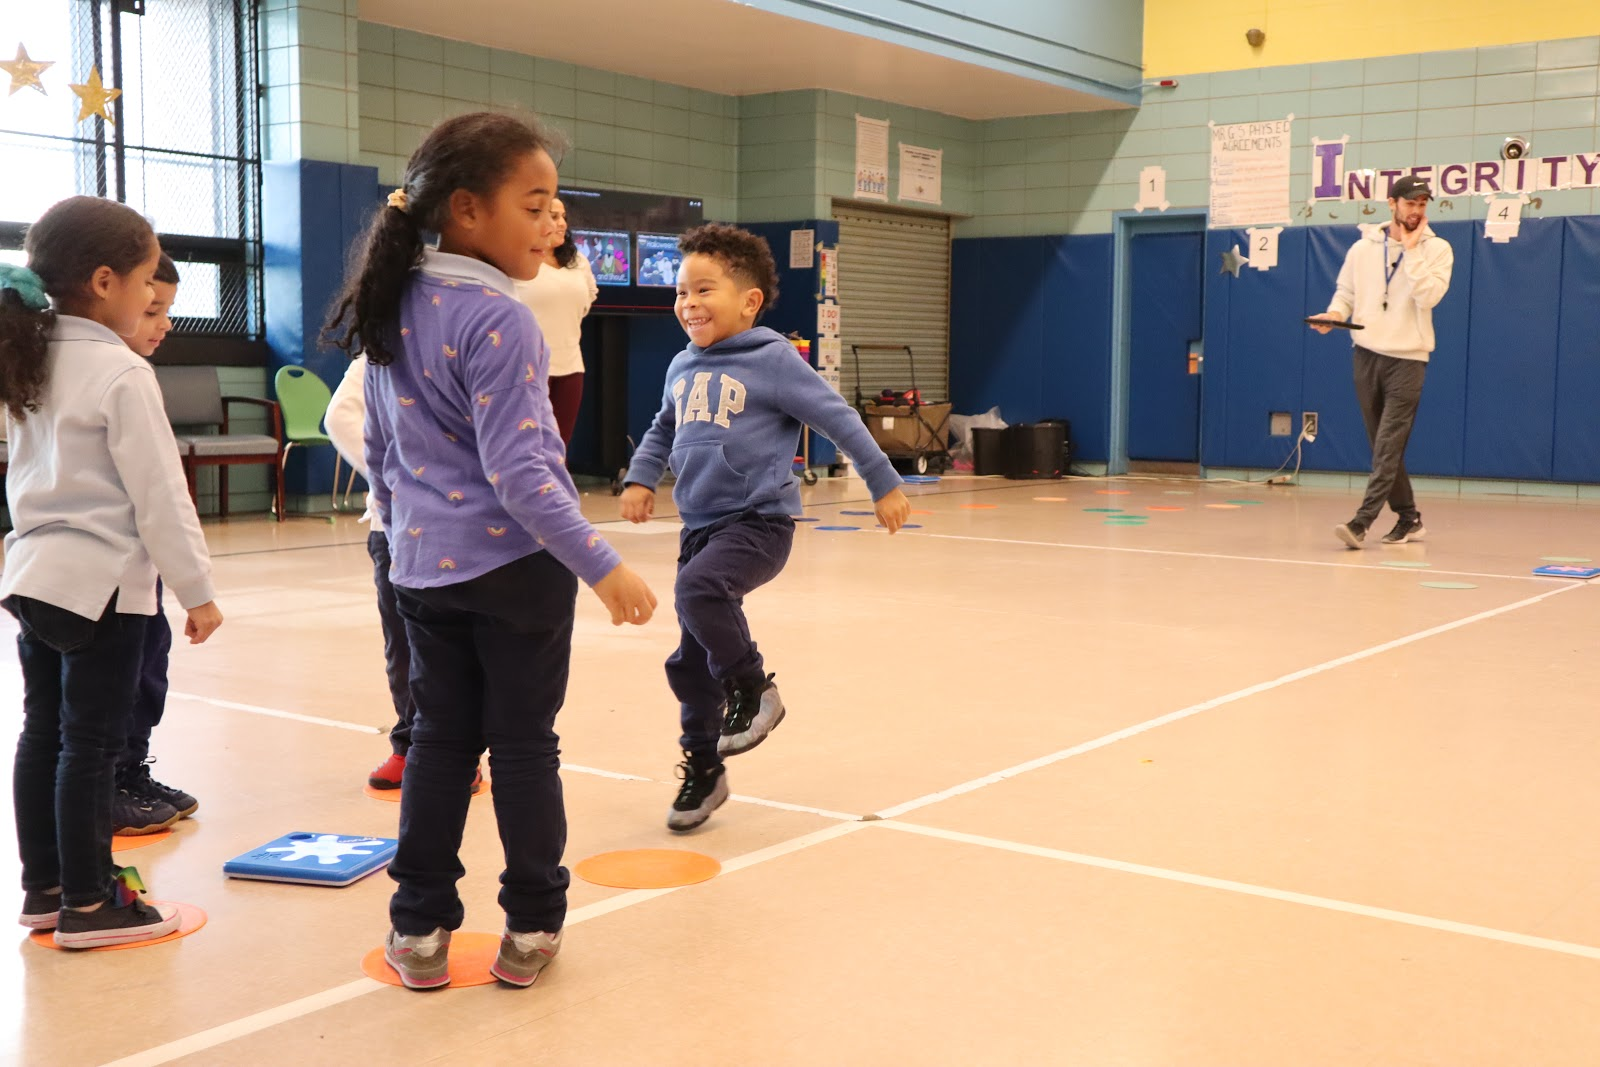 Kids Playing Active Games with Coding in PE Class